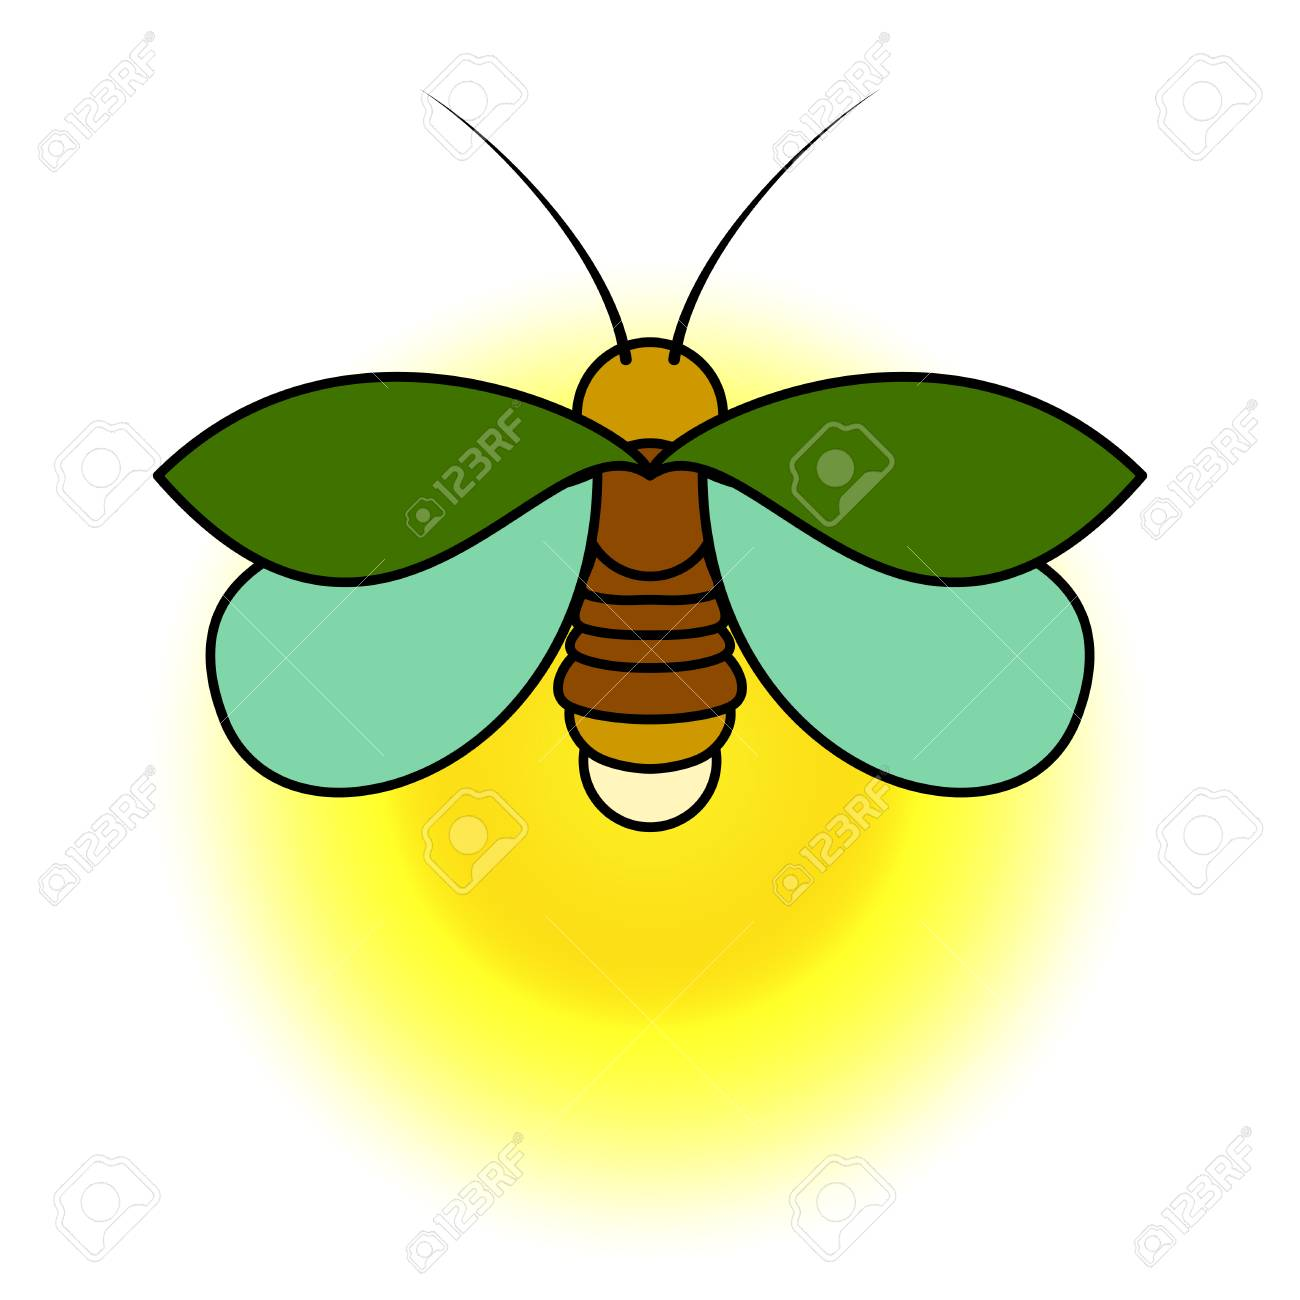 a green firefly with a yellow glow a simple stylized drawing rh 123rf com